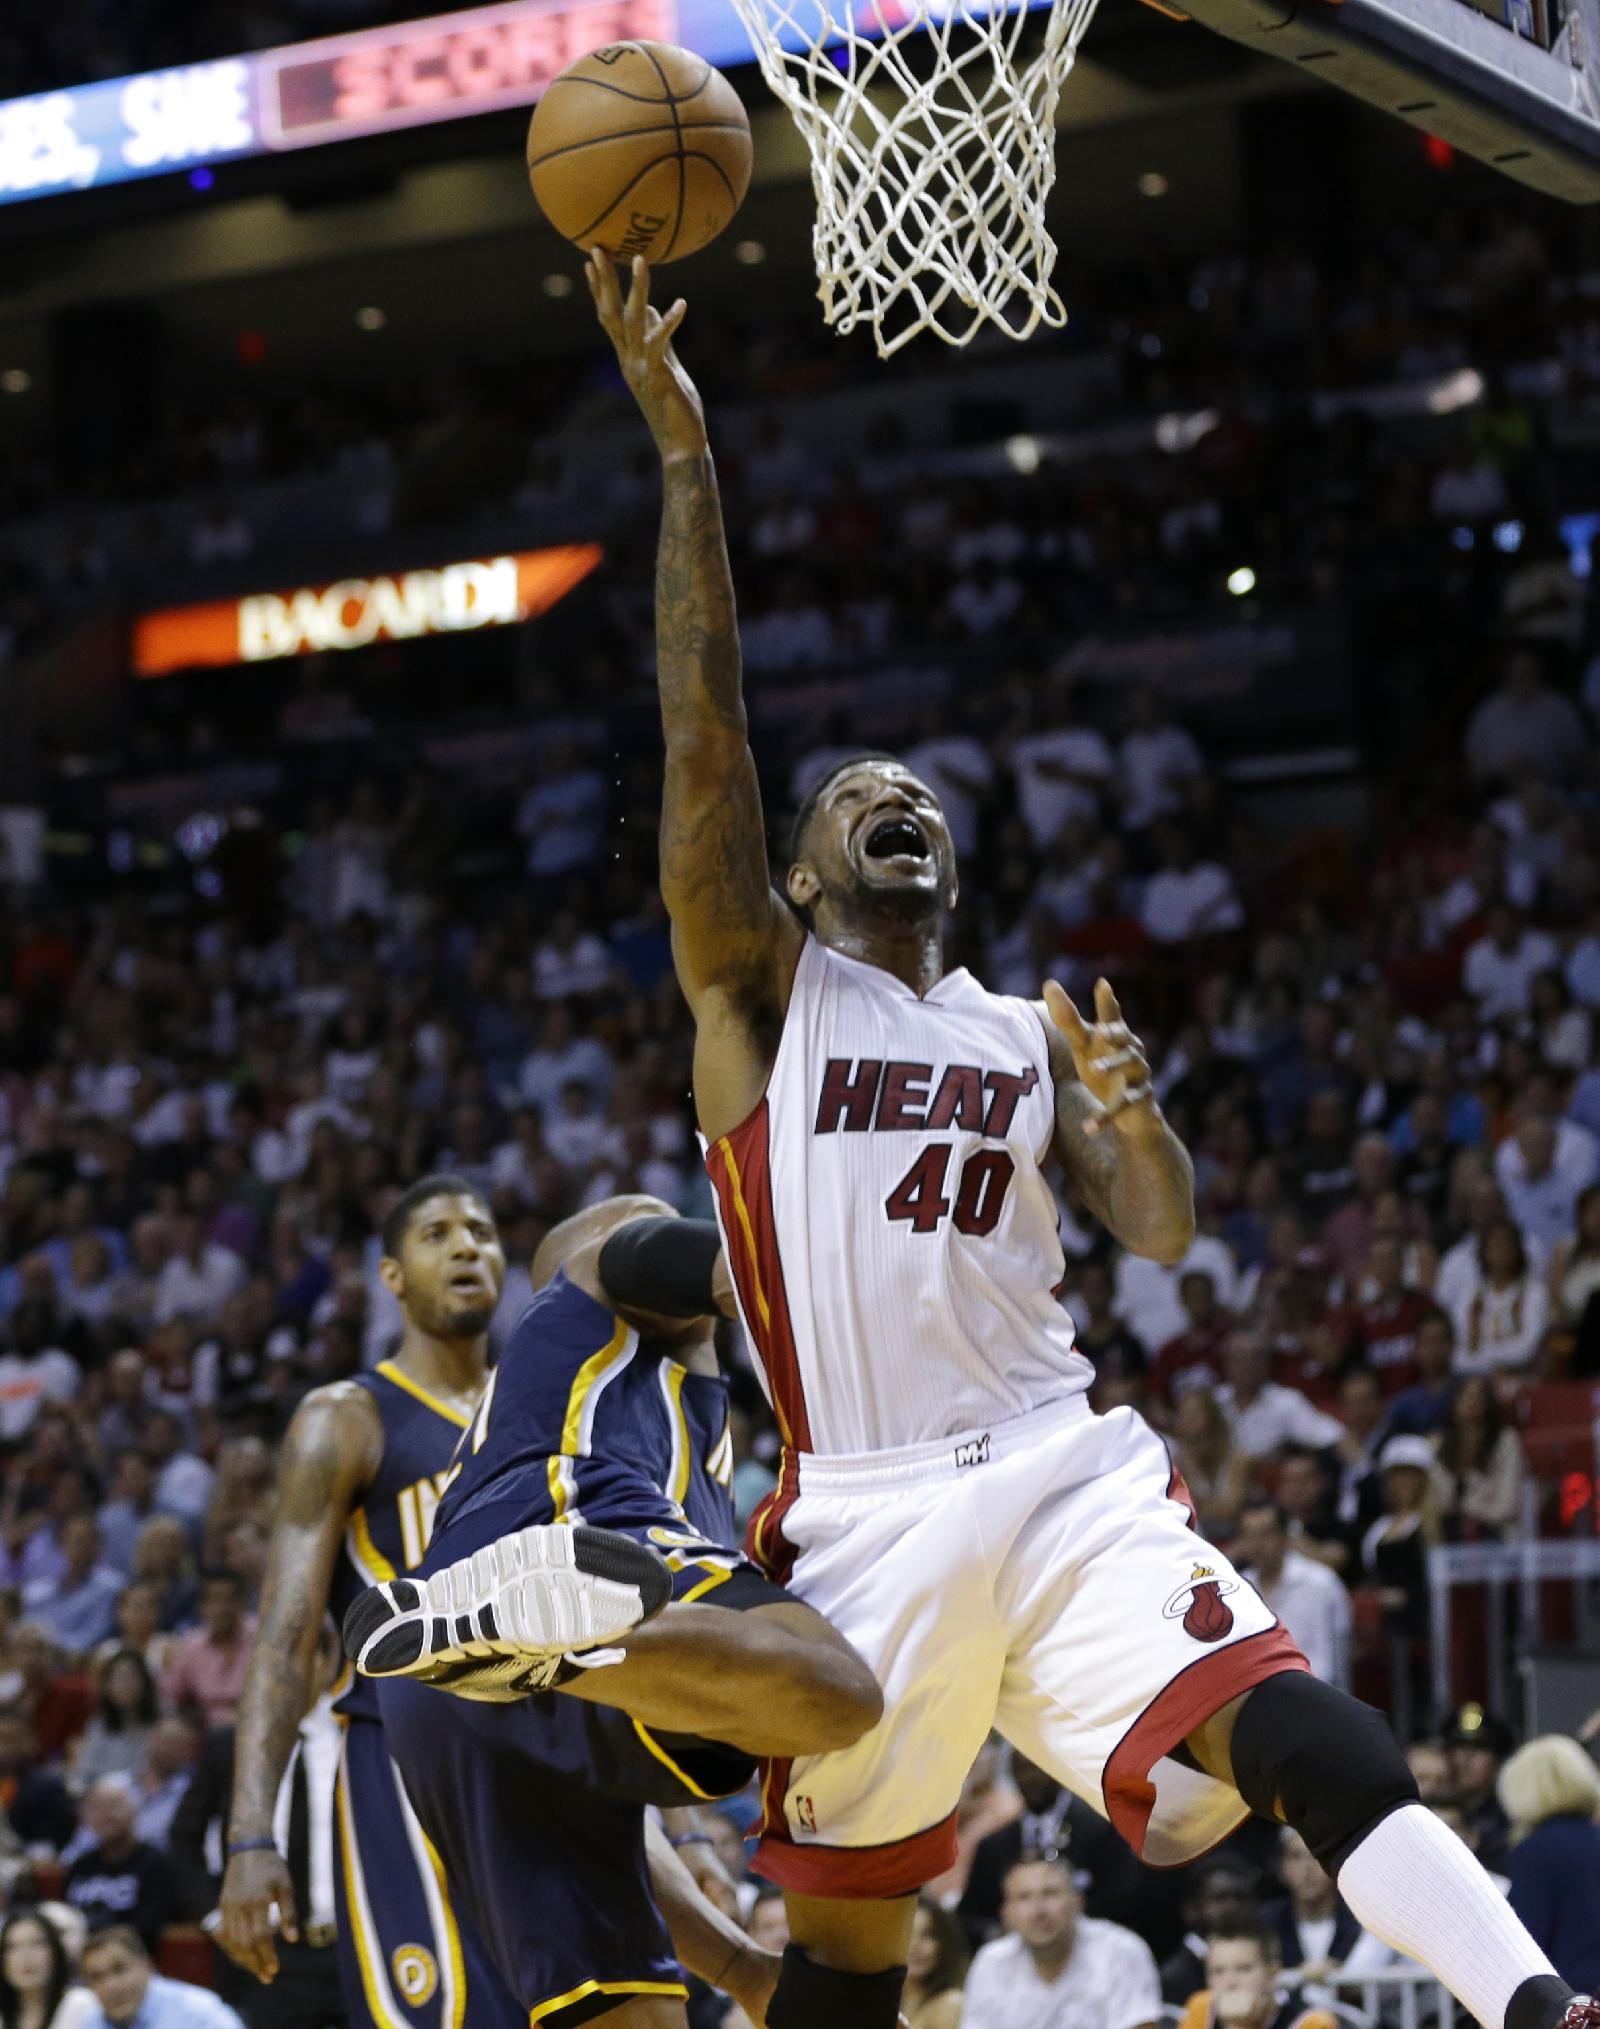 Miami Heat's Udonis Haslem (40) shoots during the second half of an NBA basketball game against the Indiana Pacers, Friday, April 11, 2014, in Miami. The Heat defeated the Pacers 98-86